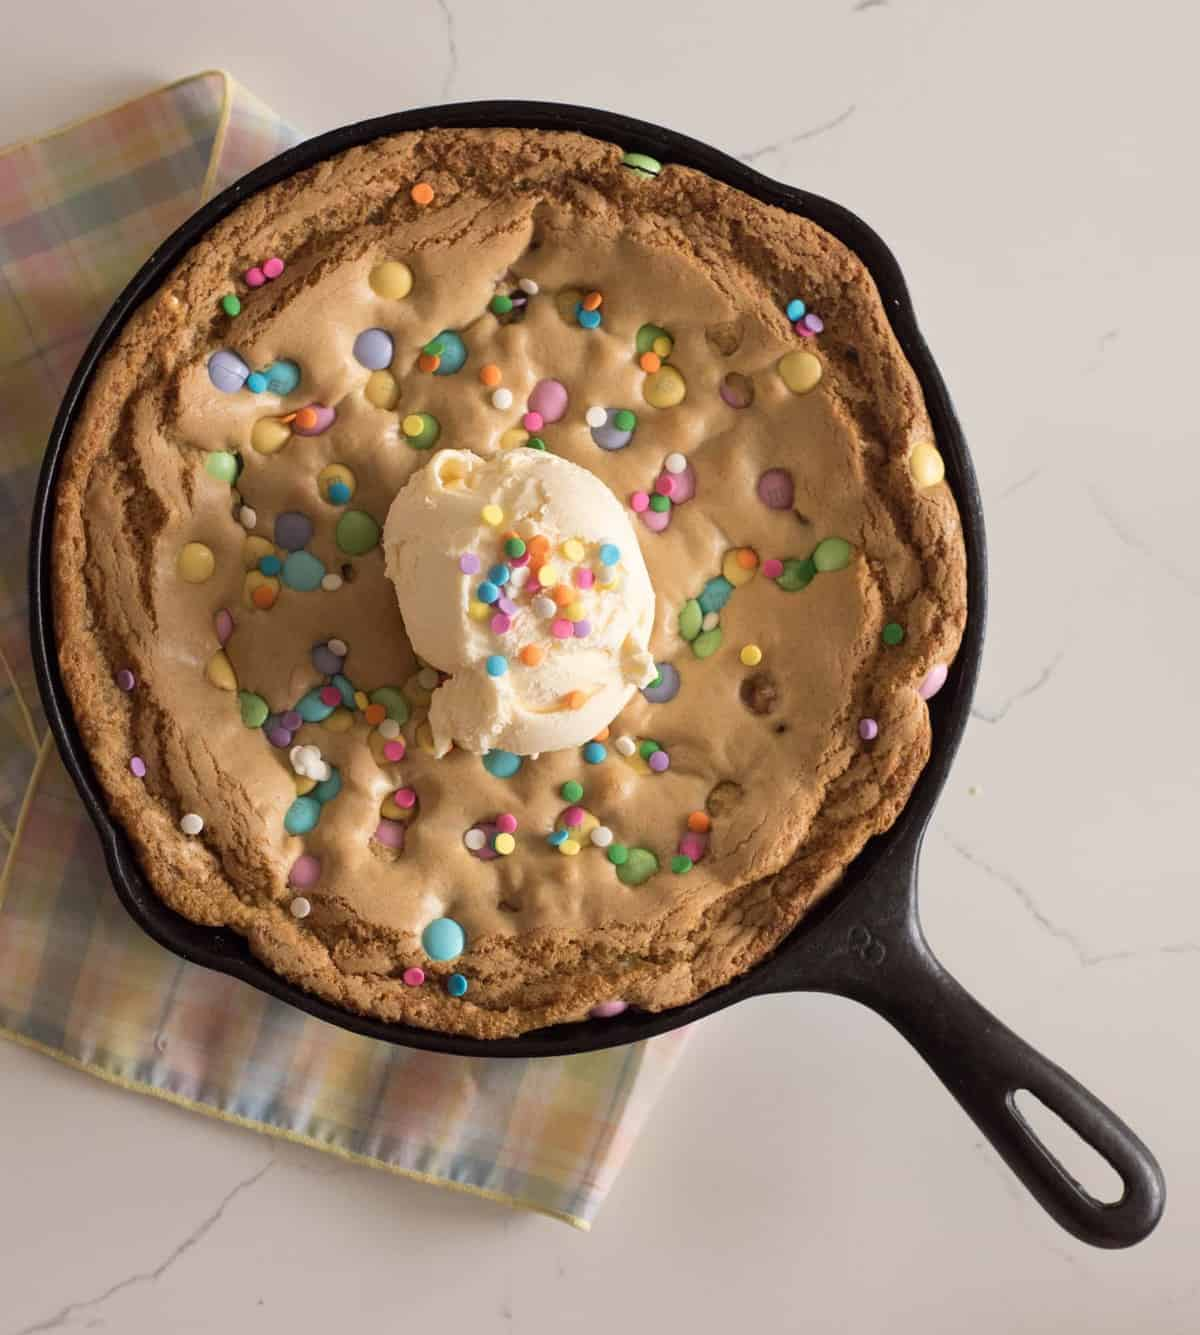 Easy skillet cookie recipe that is baked in a cast iron skillet topped with ice cream and sprinkles.